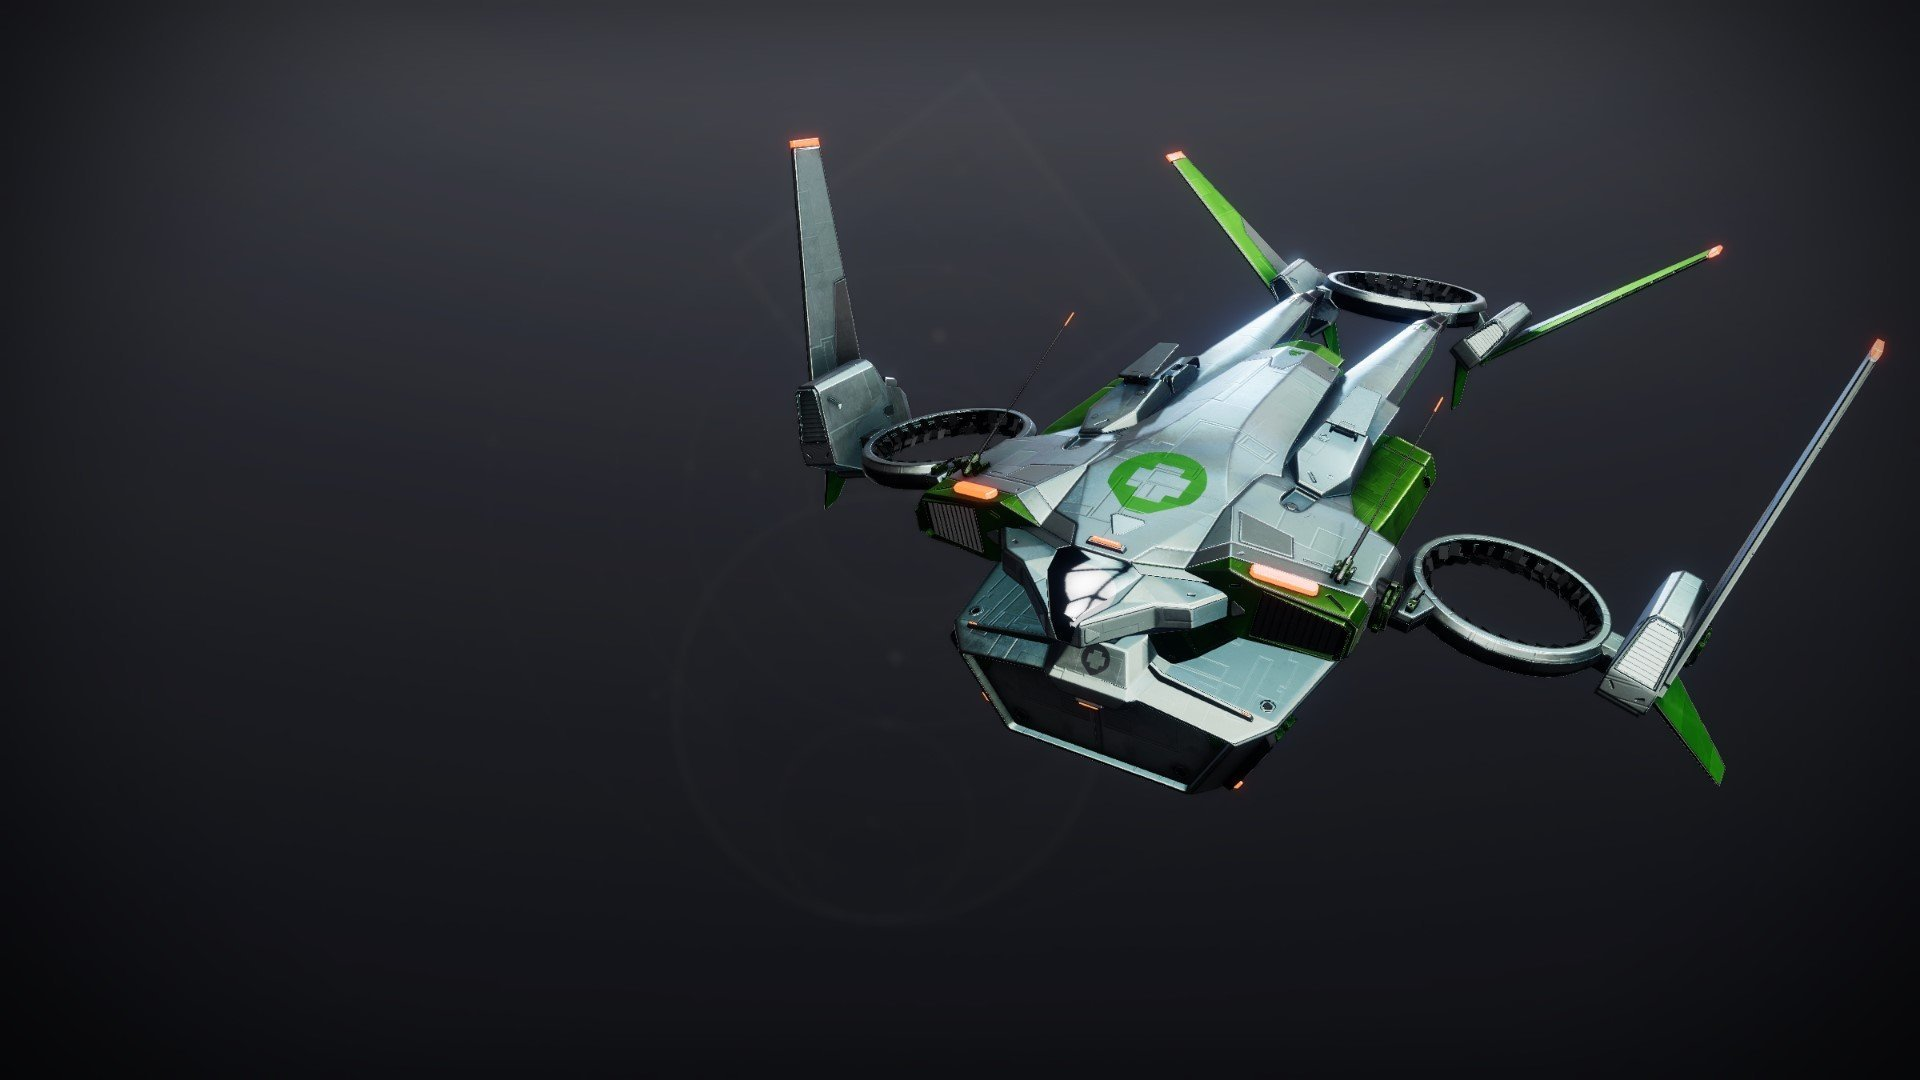 An in-game render of the M3-D1 Valkyrie.